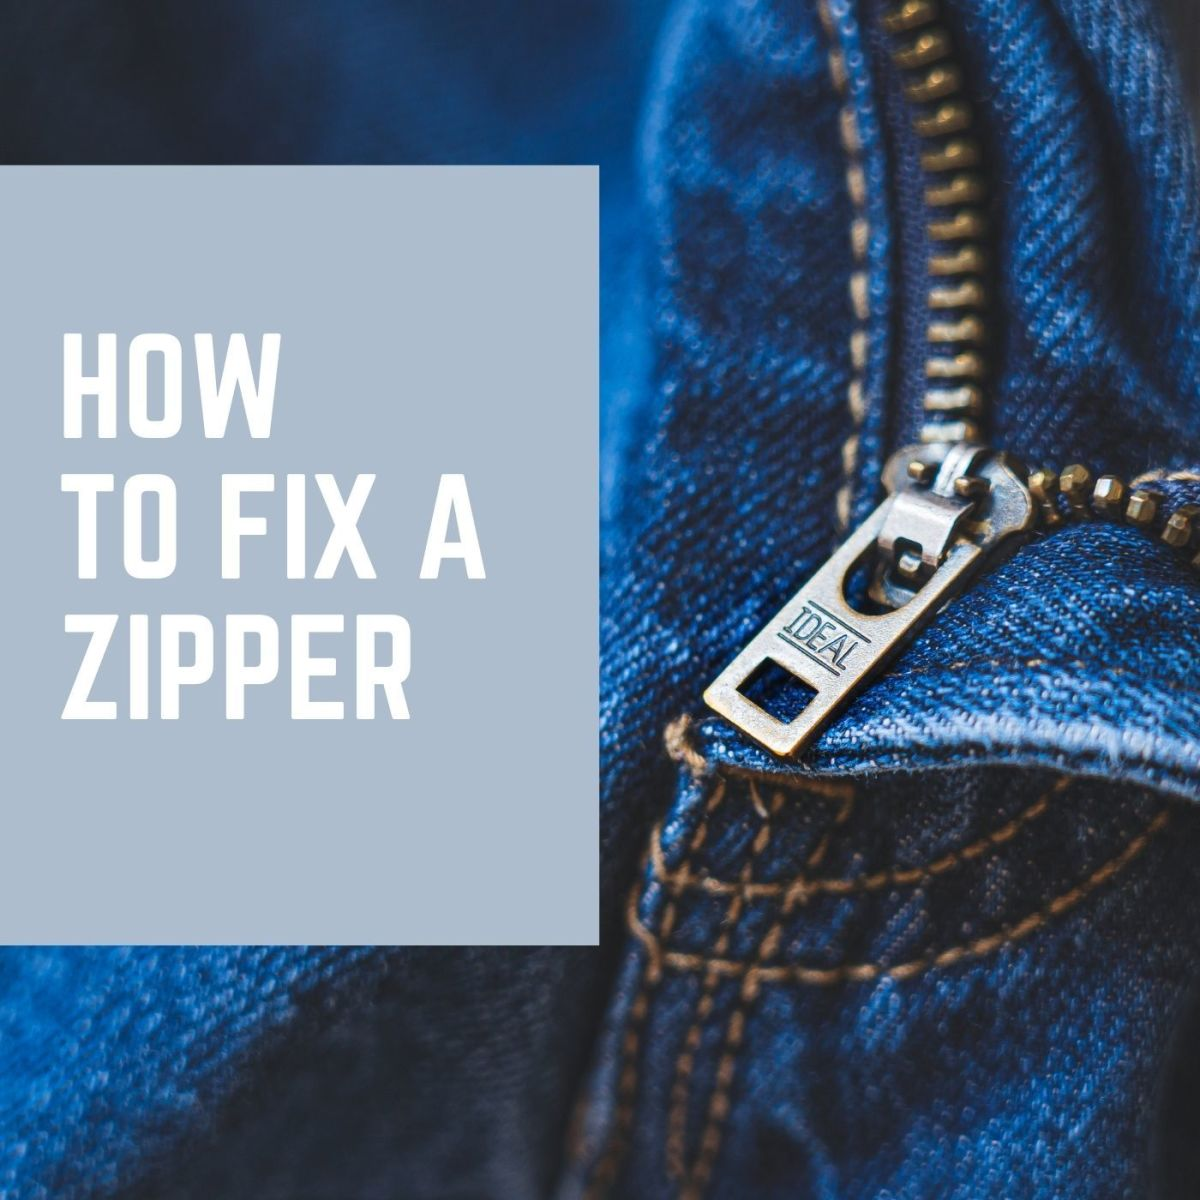 Zipper repair doesn't have to be hard!